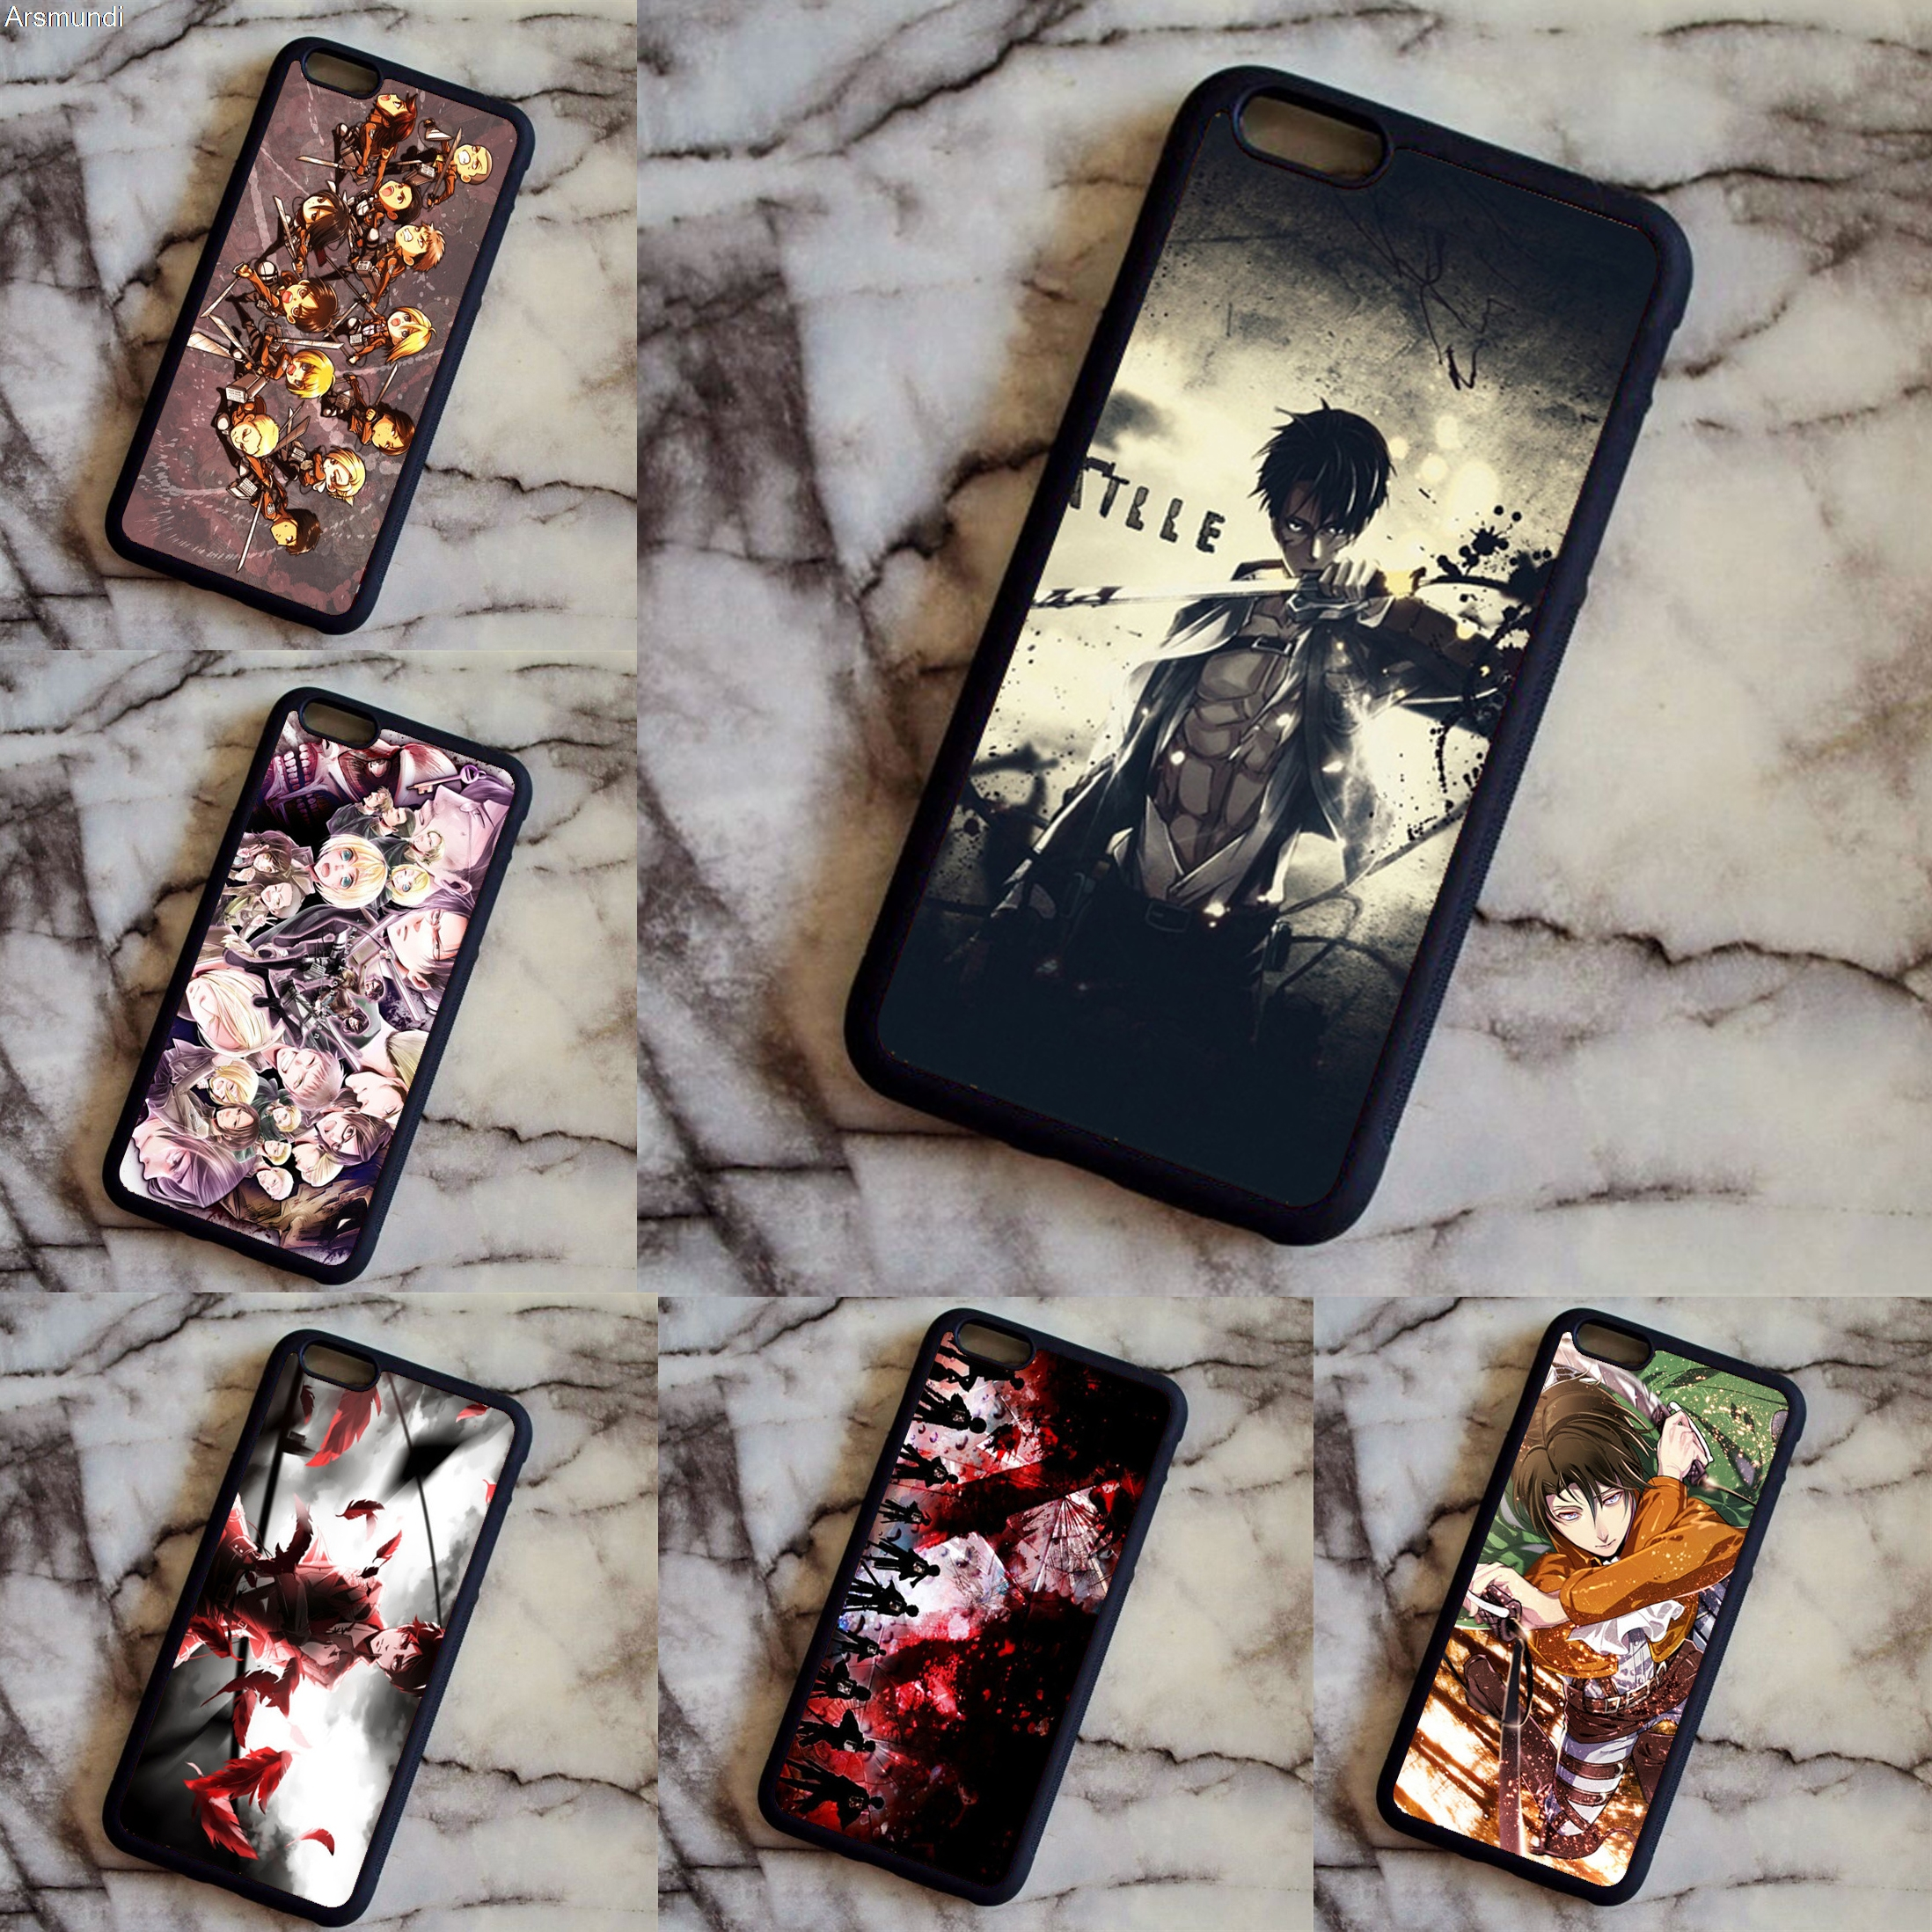 Arsmundi font b 2018 b font Japanese anime attack on titan clear Phone Cases for font